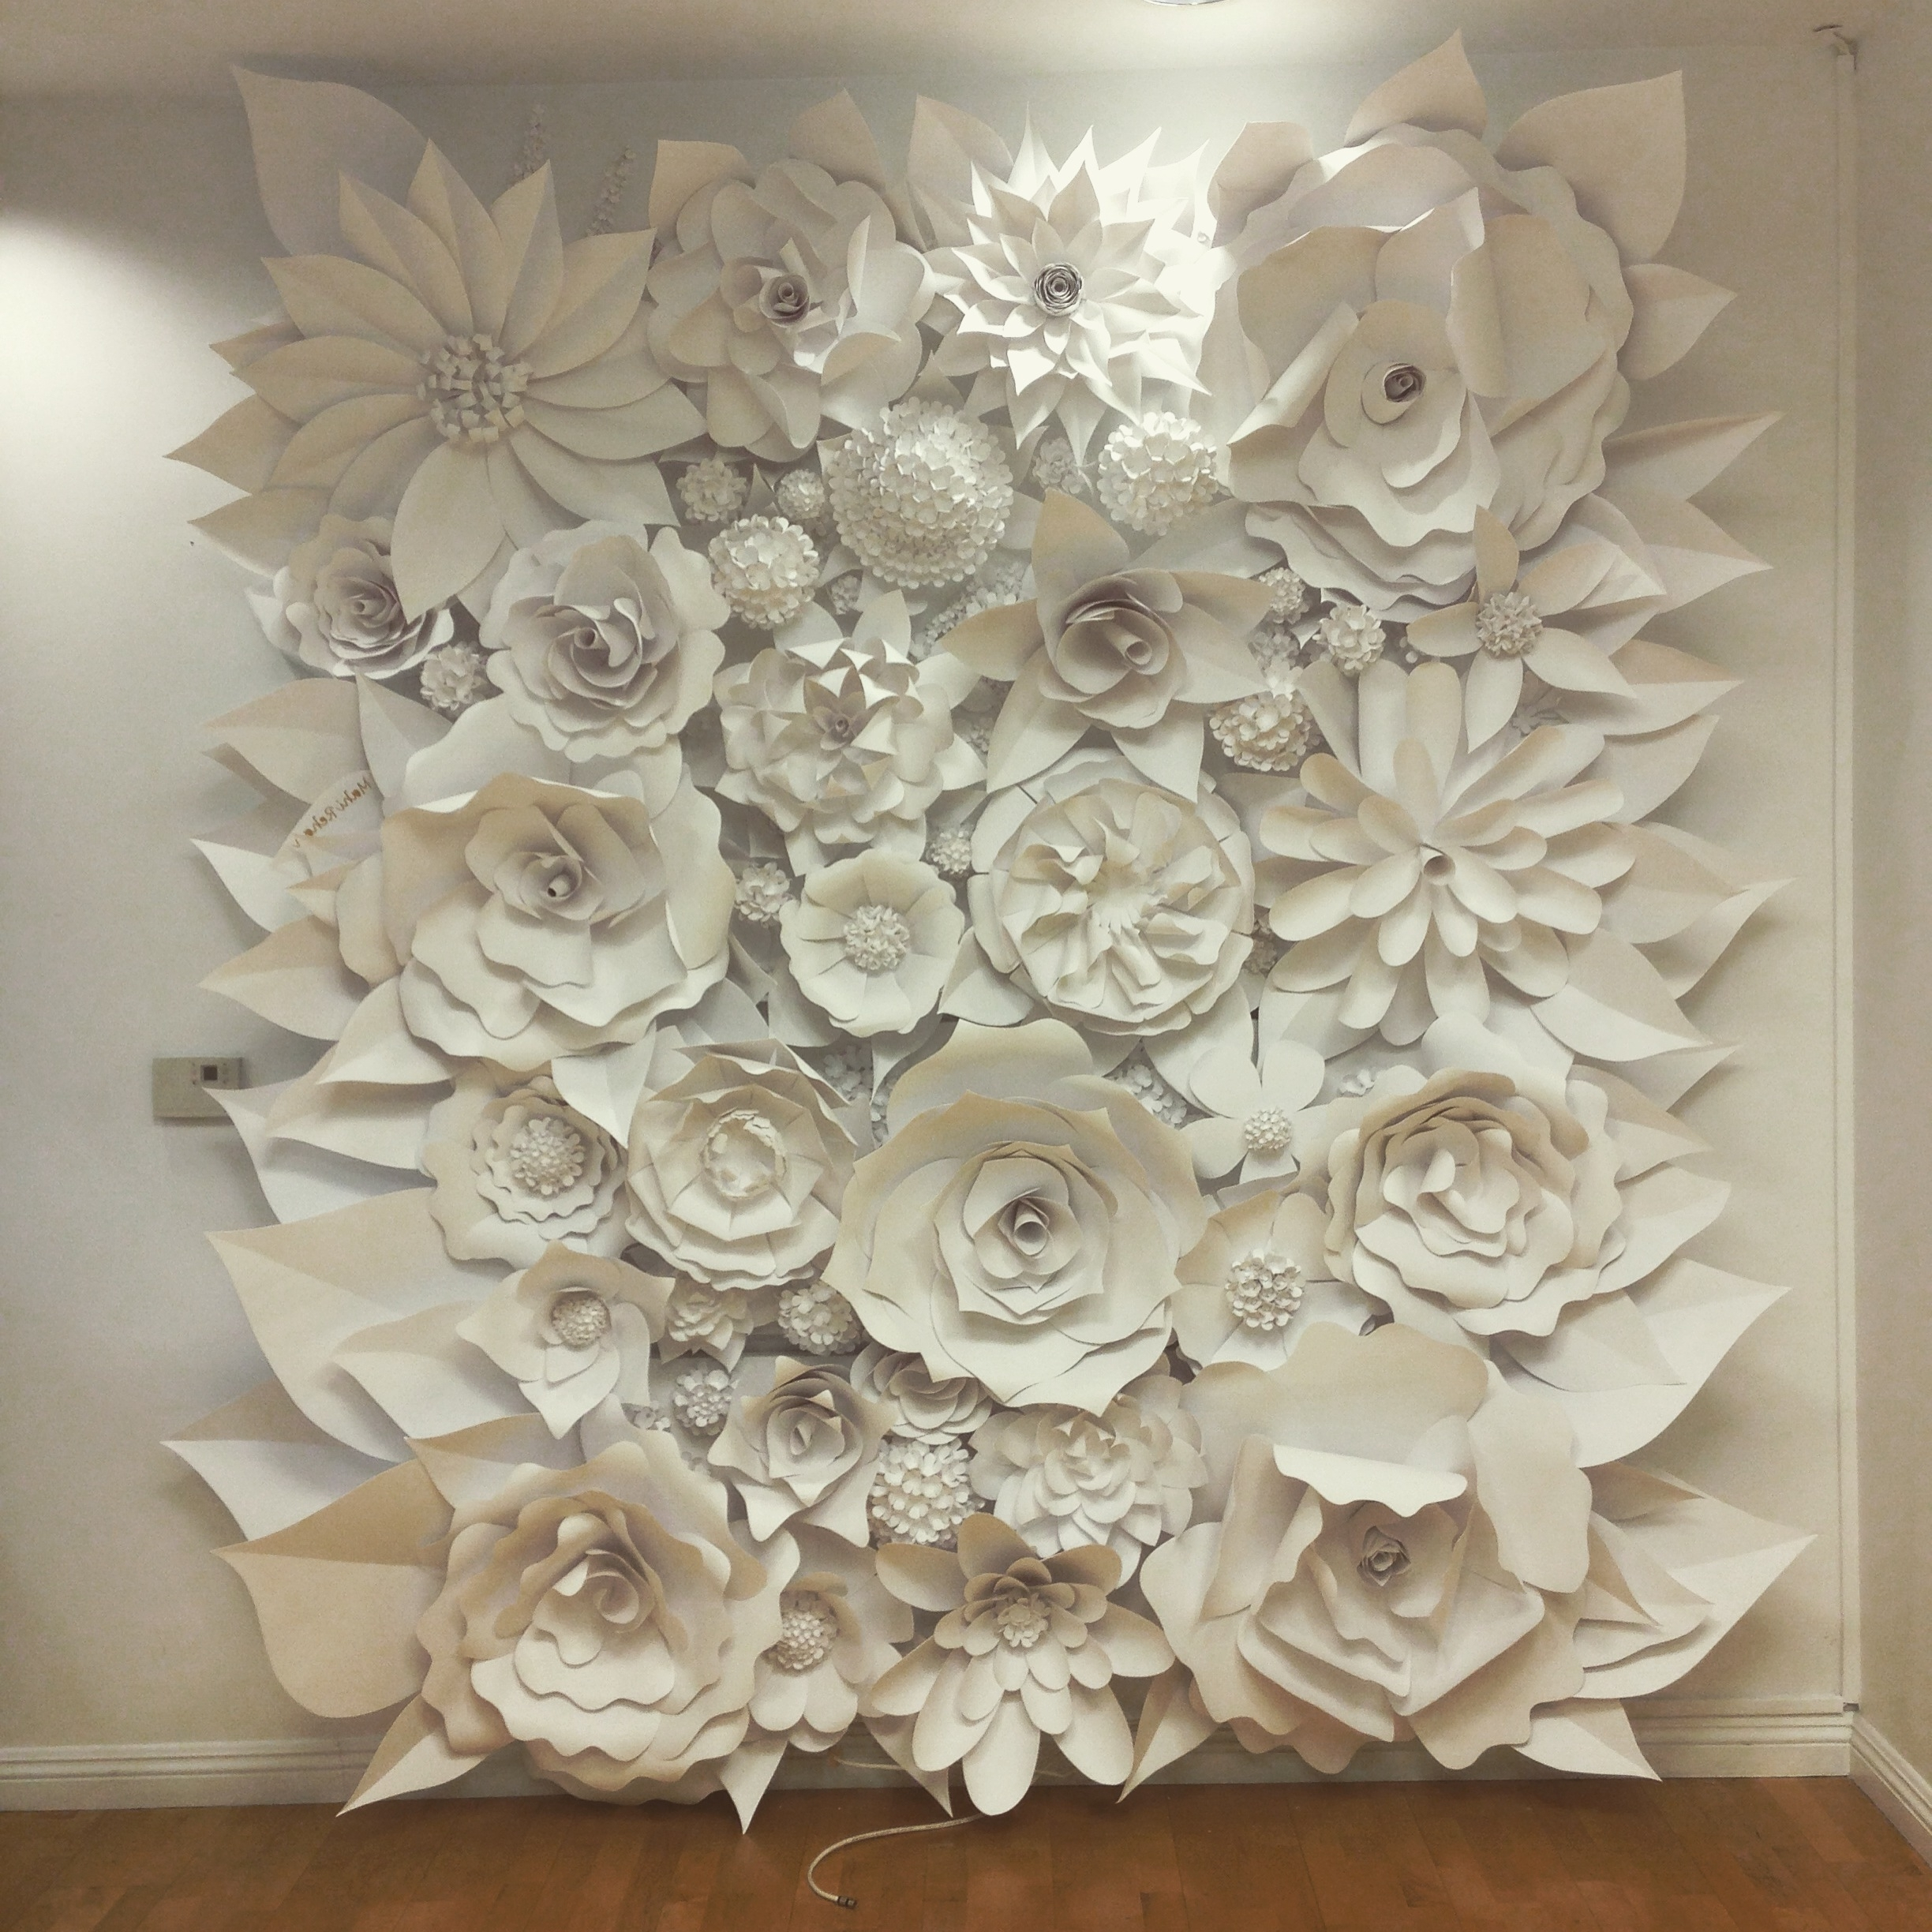 3D Flower Wall Art Pertaining To Well Liked Diy 3D Flower Canvas Wall Art Diy Mothers Day Gift Youtube (View 3 of 15)